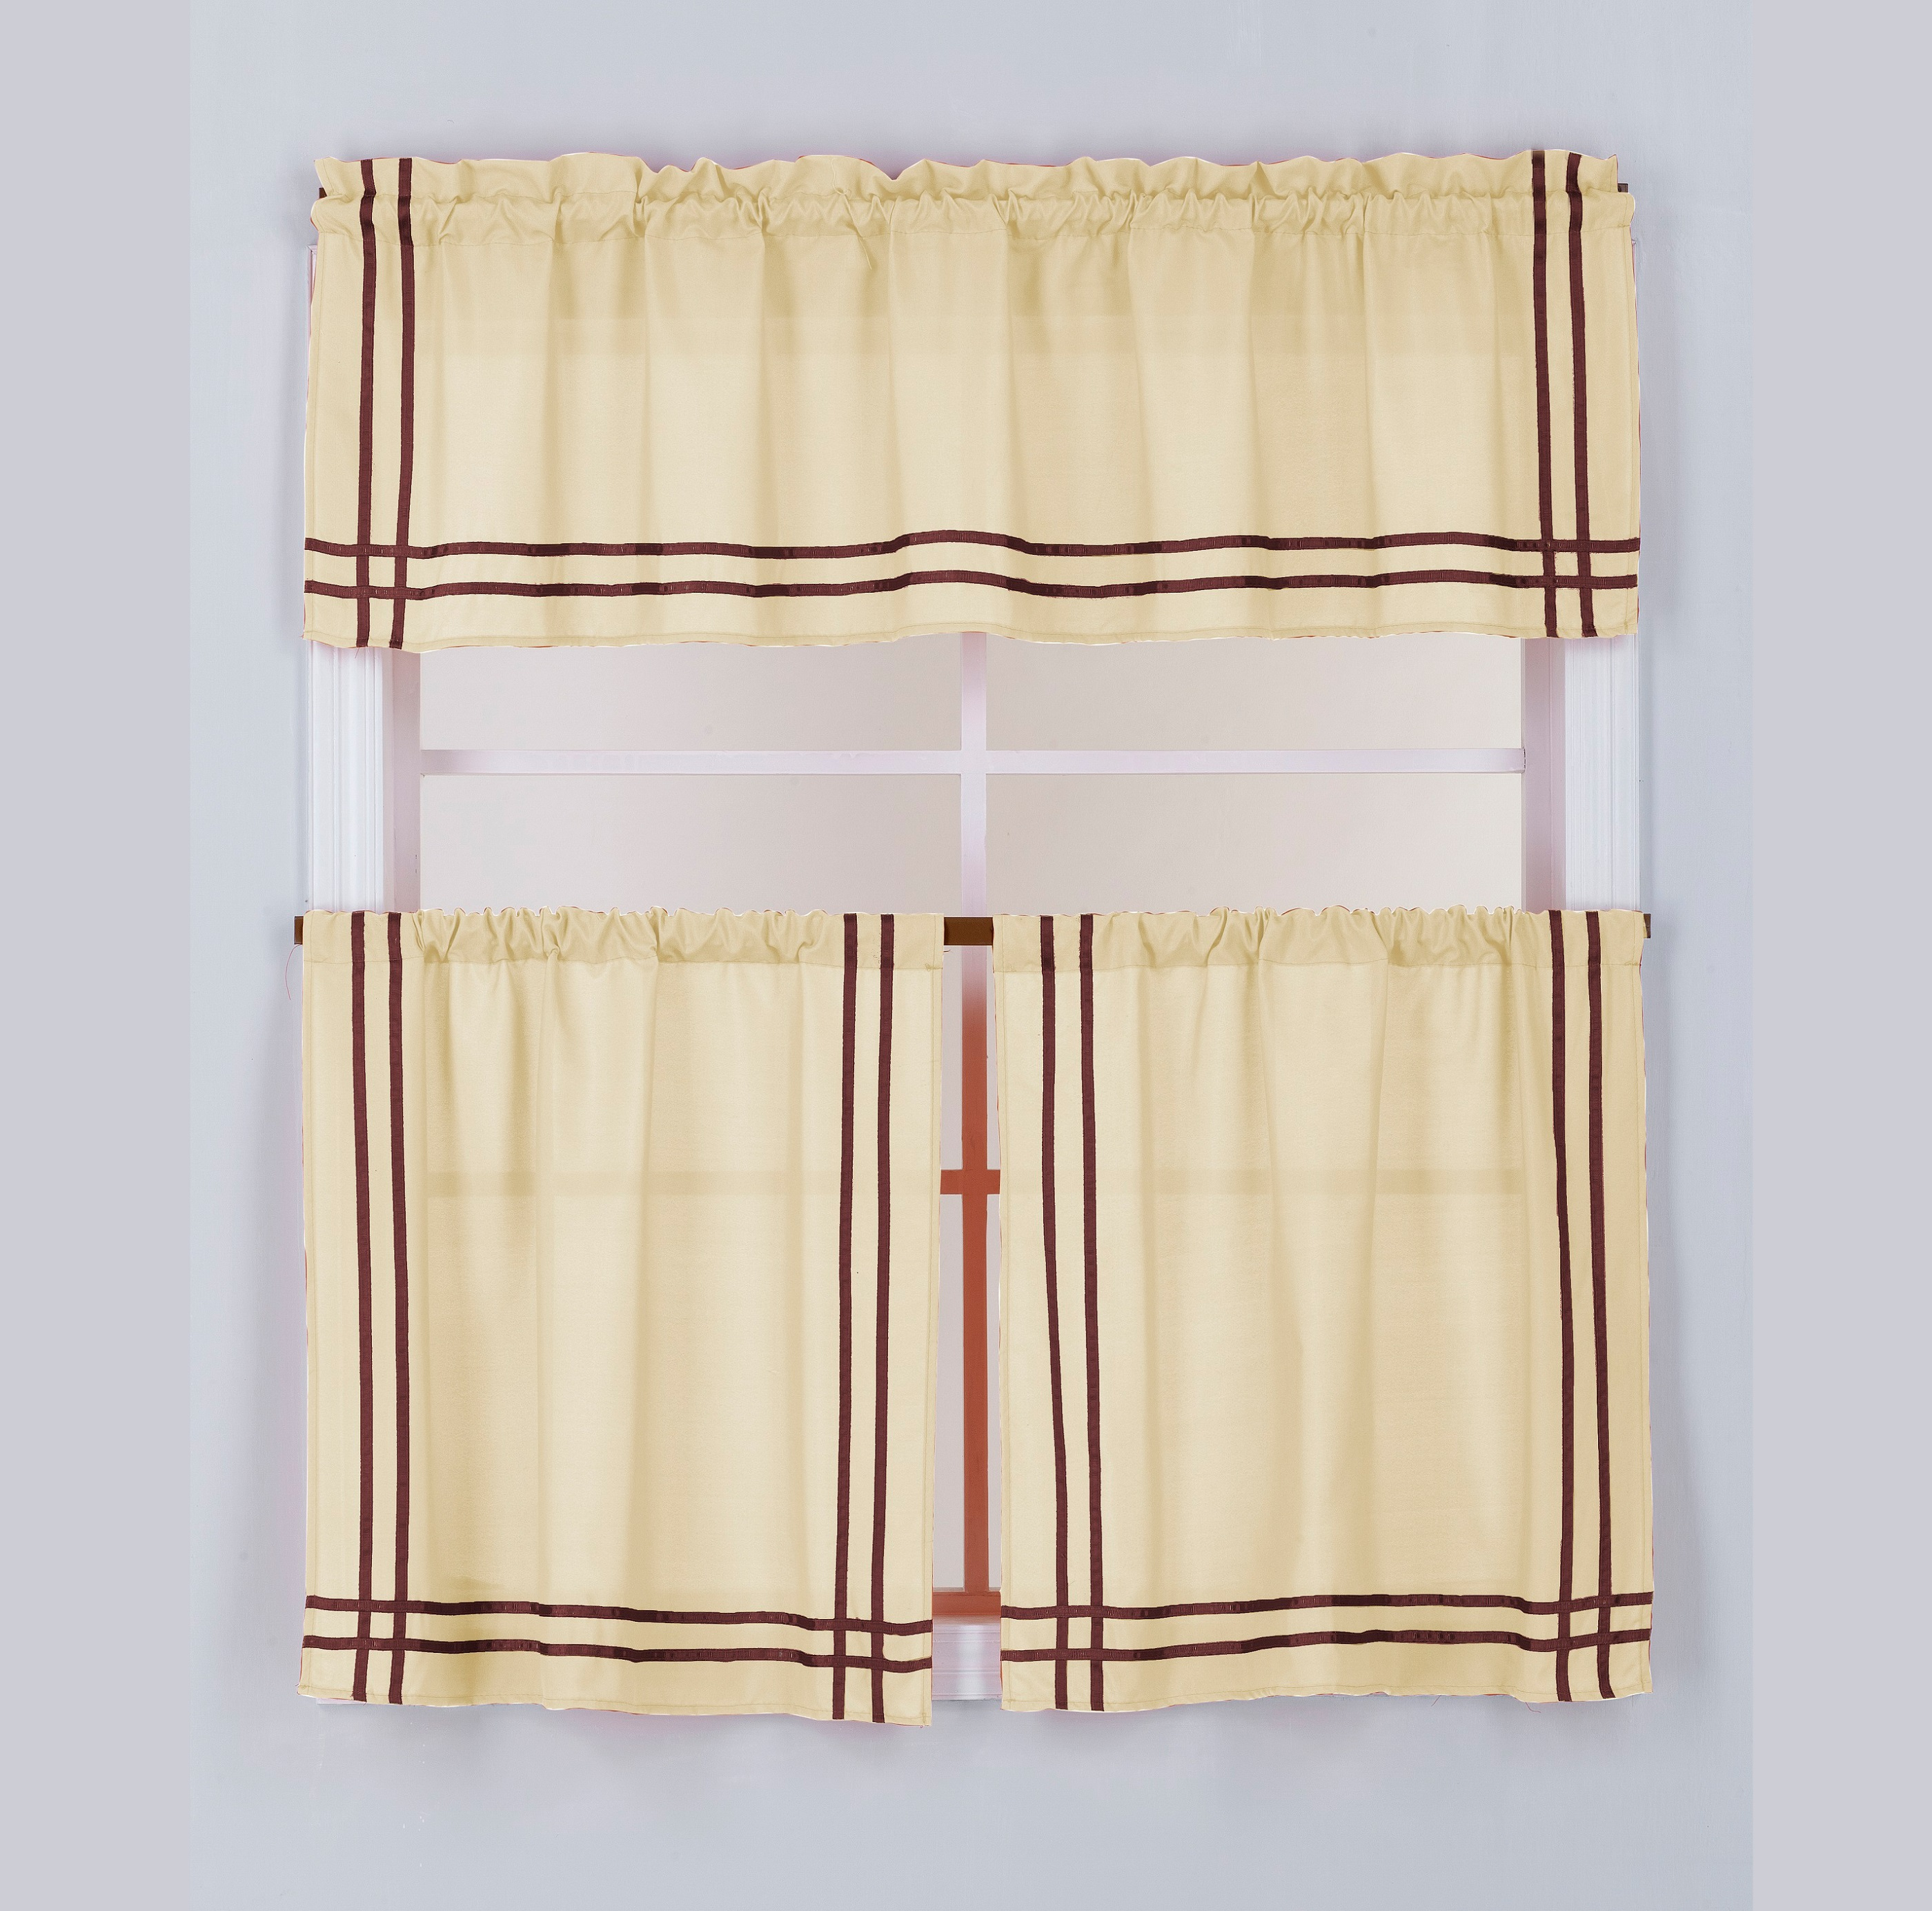 Cafe Solid Microfiber Grosgrain Ribbon Kitchen Curtain Sets Buy Curtains For Kitchen Curtains Kitchen Ready Made Kitchen Short Curtain Product On Alibaba Com